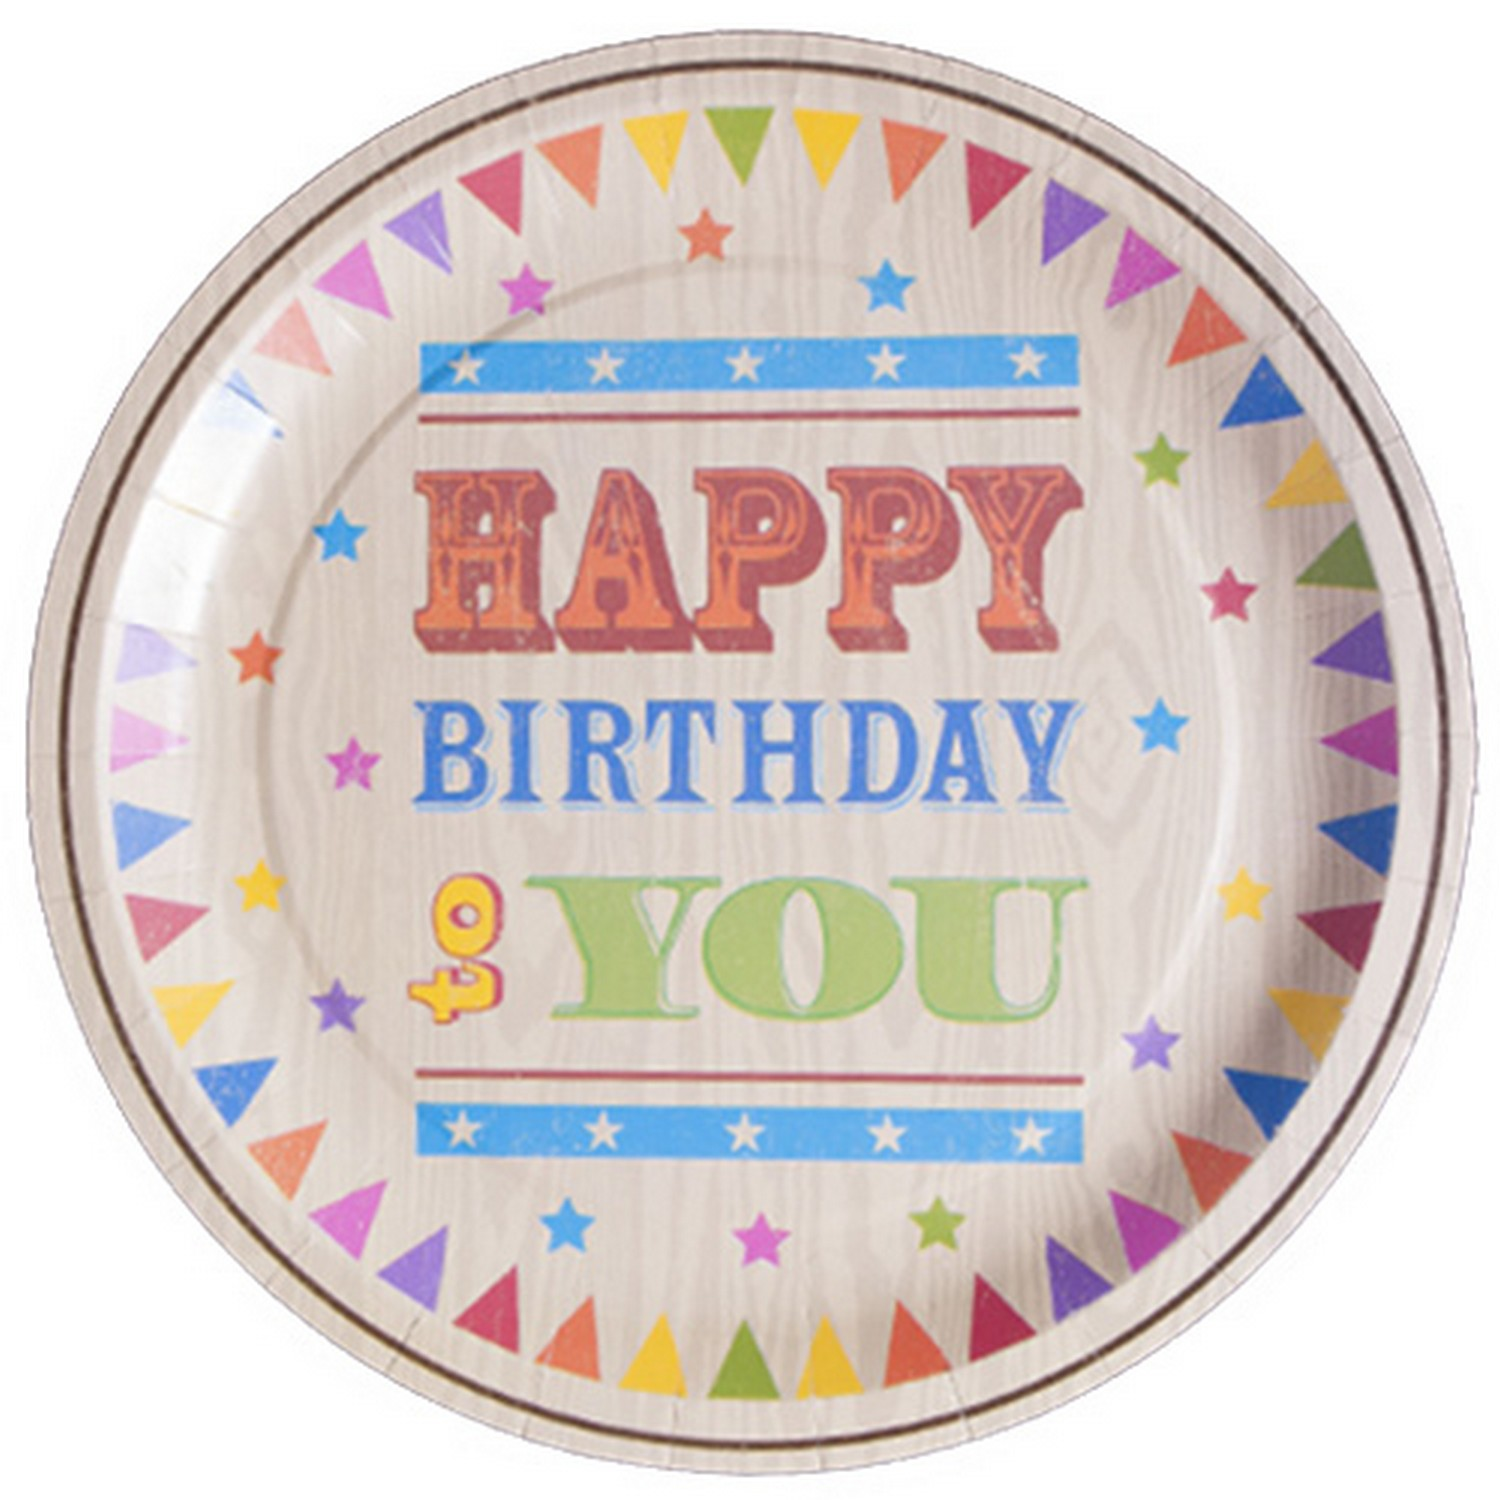 Returning To Letter From Here Like >> Circus Fun Happy Birthday Celebration Paper Plates x 6 | blendboutique